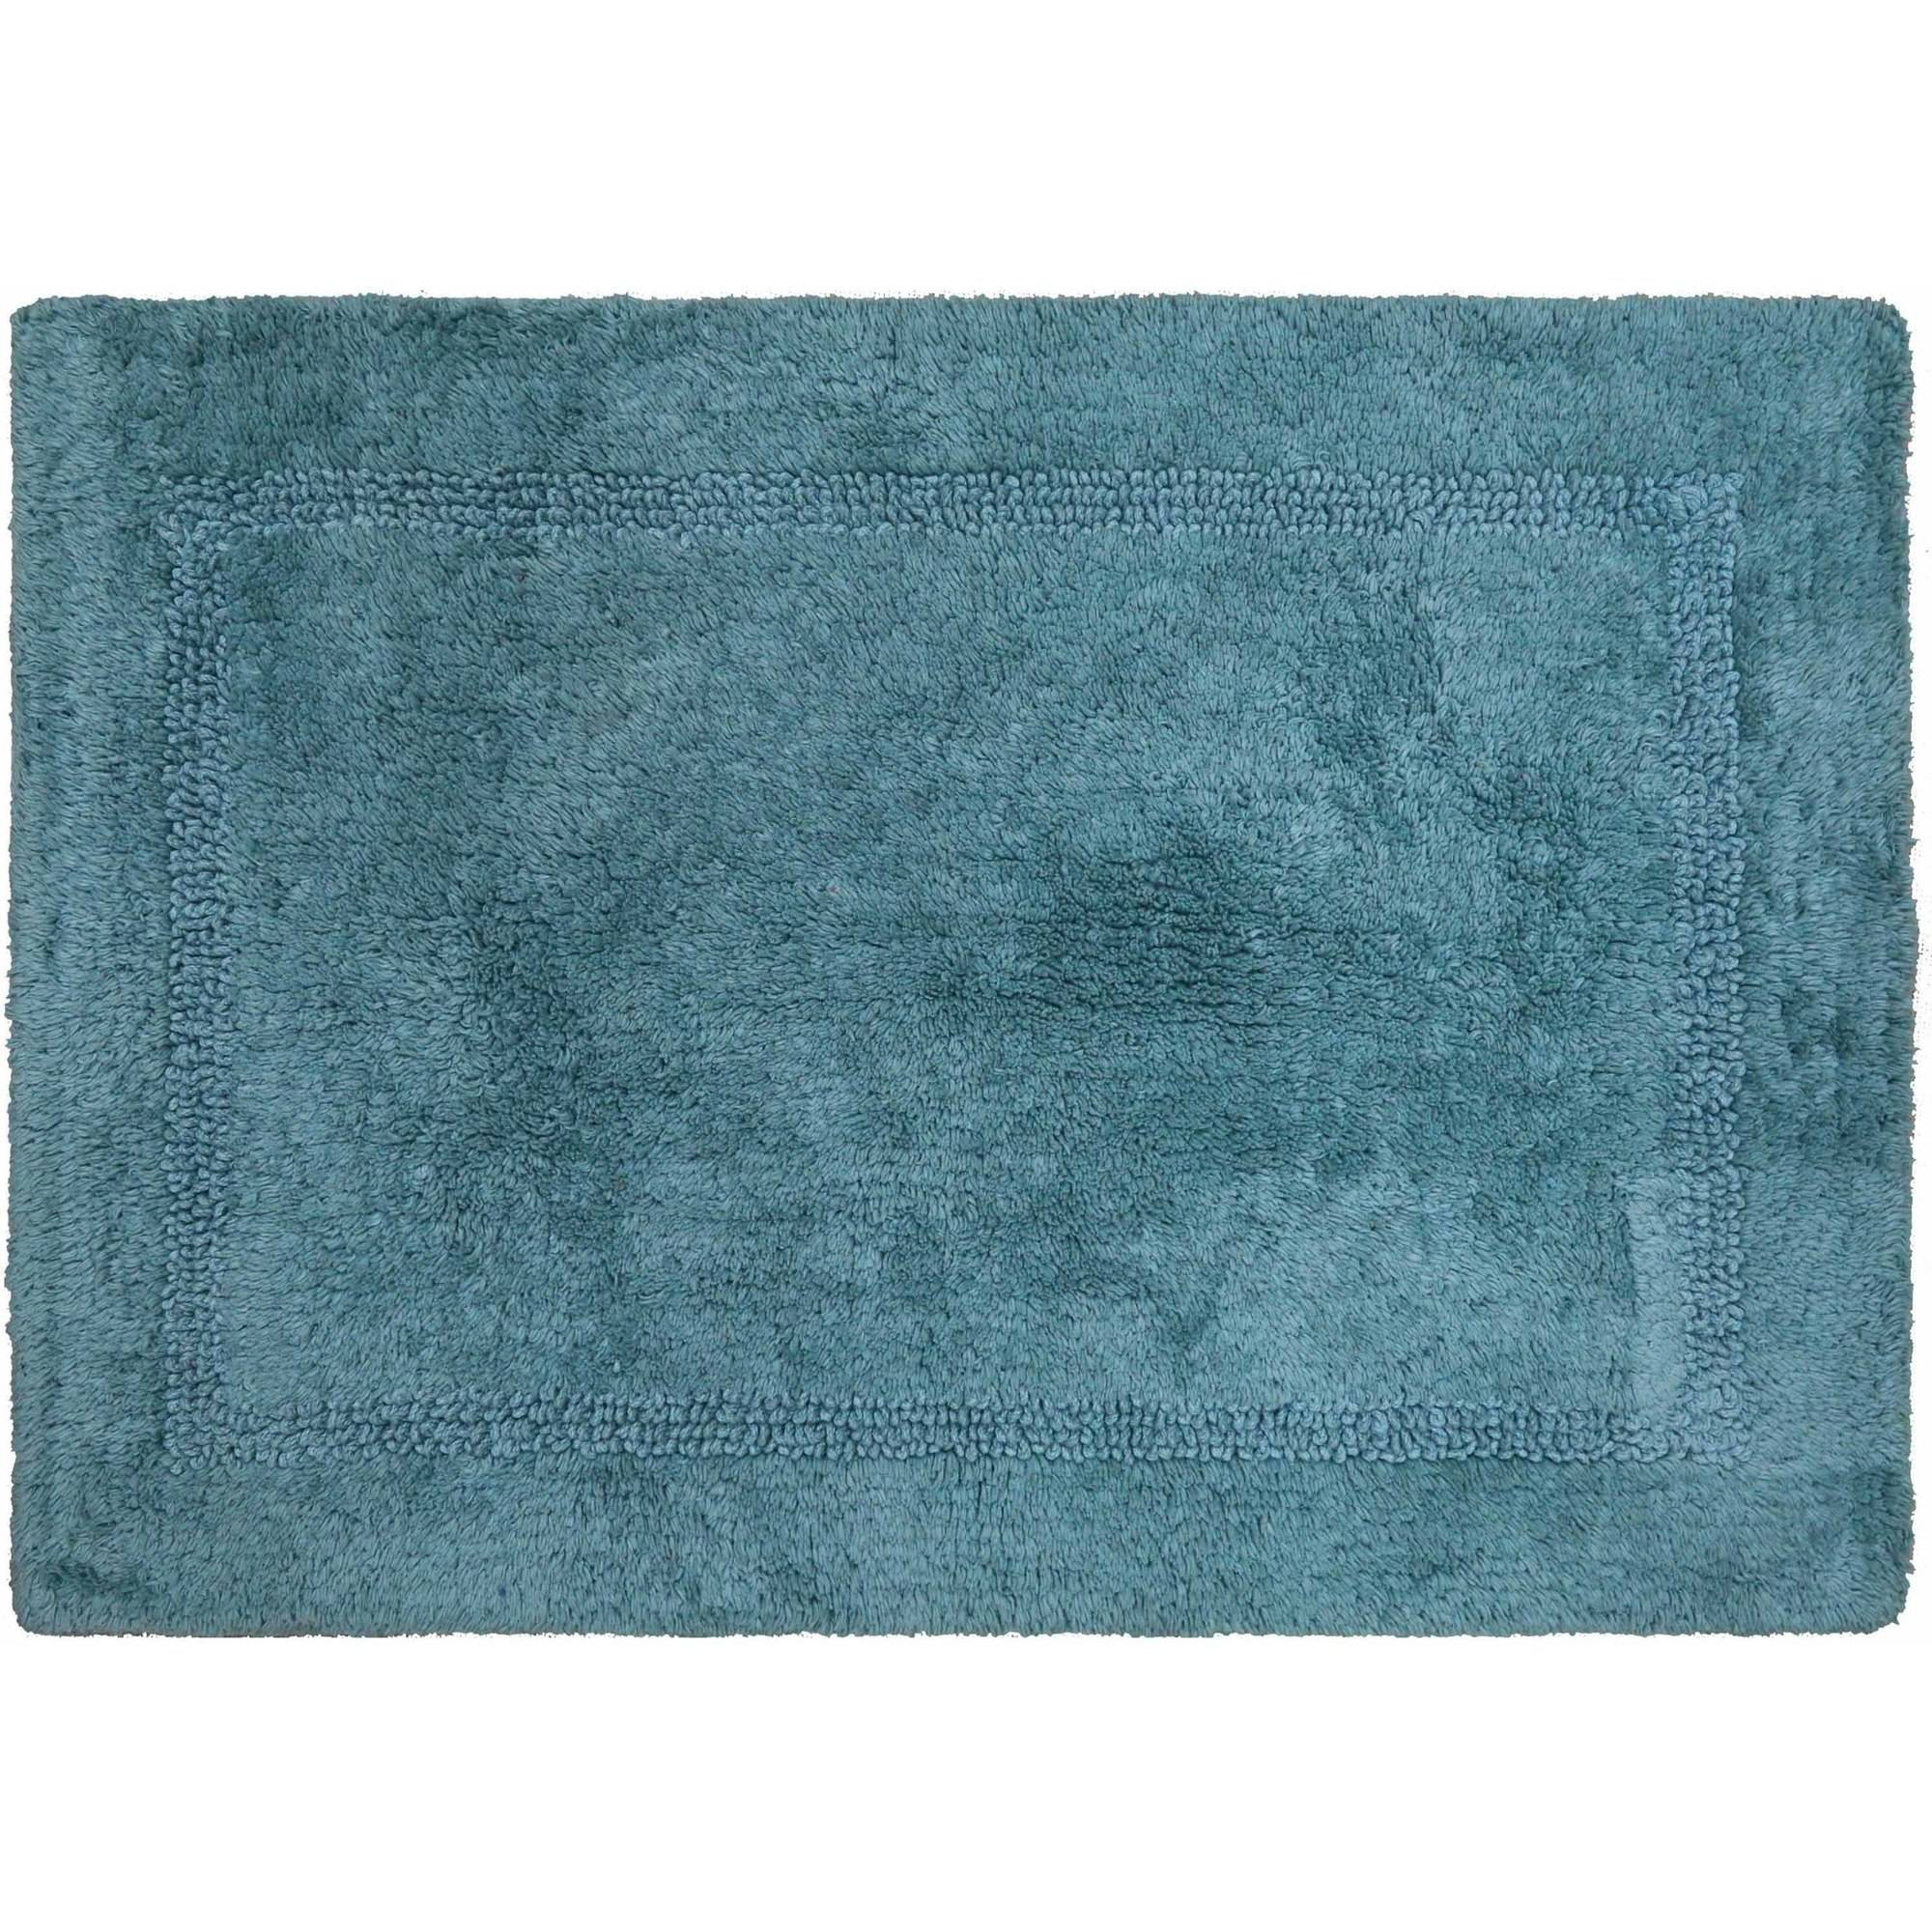 Better Homes and Gardens Cotton Reversible Bath Rug